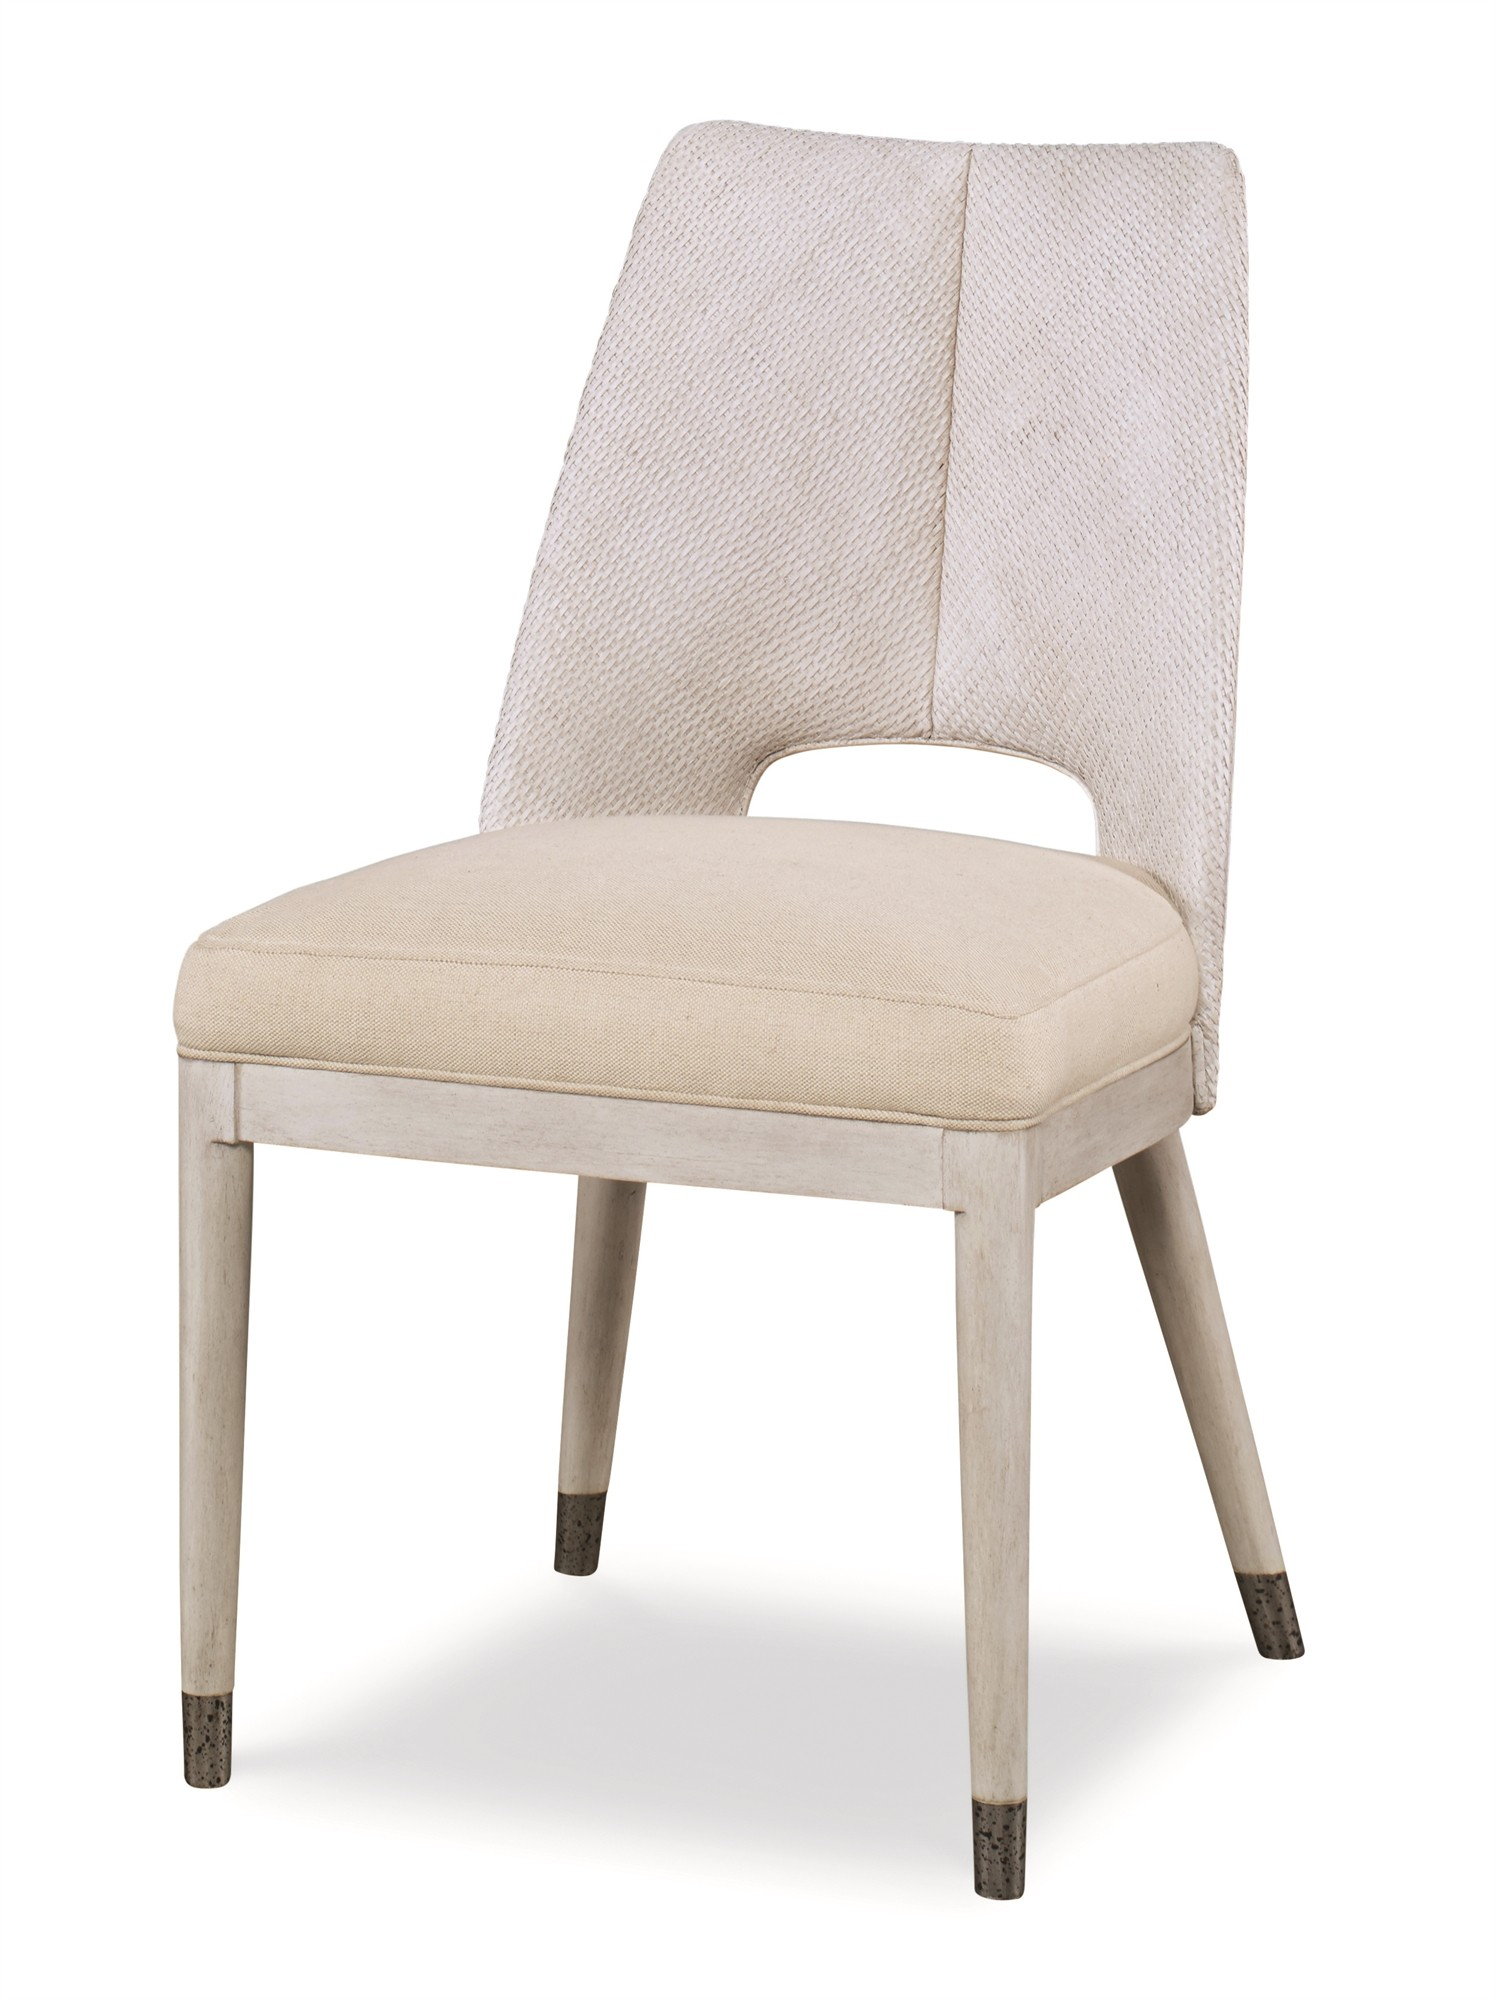 Largo Side Chair - Peninsula/Flax